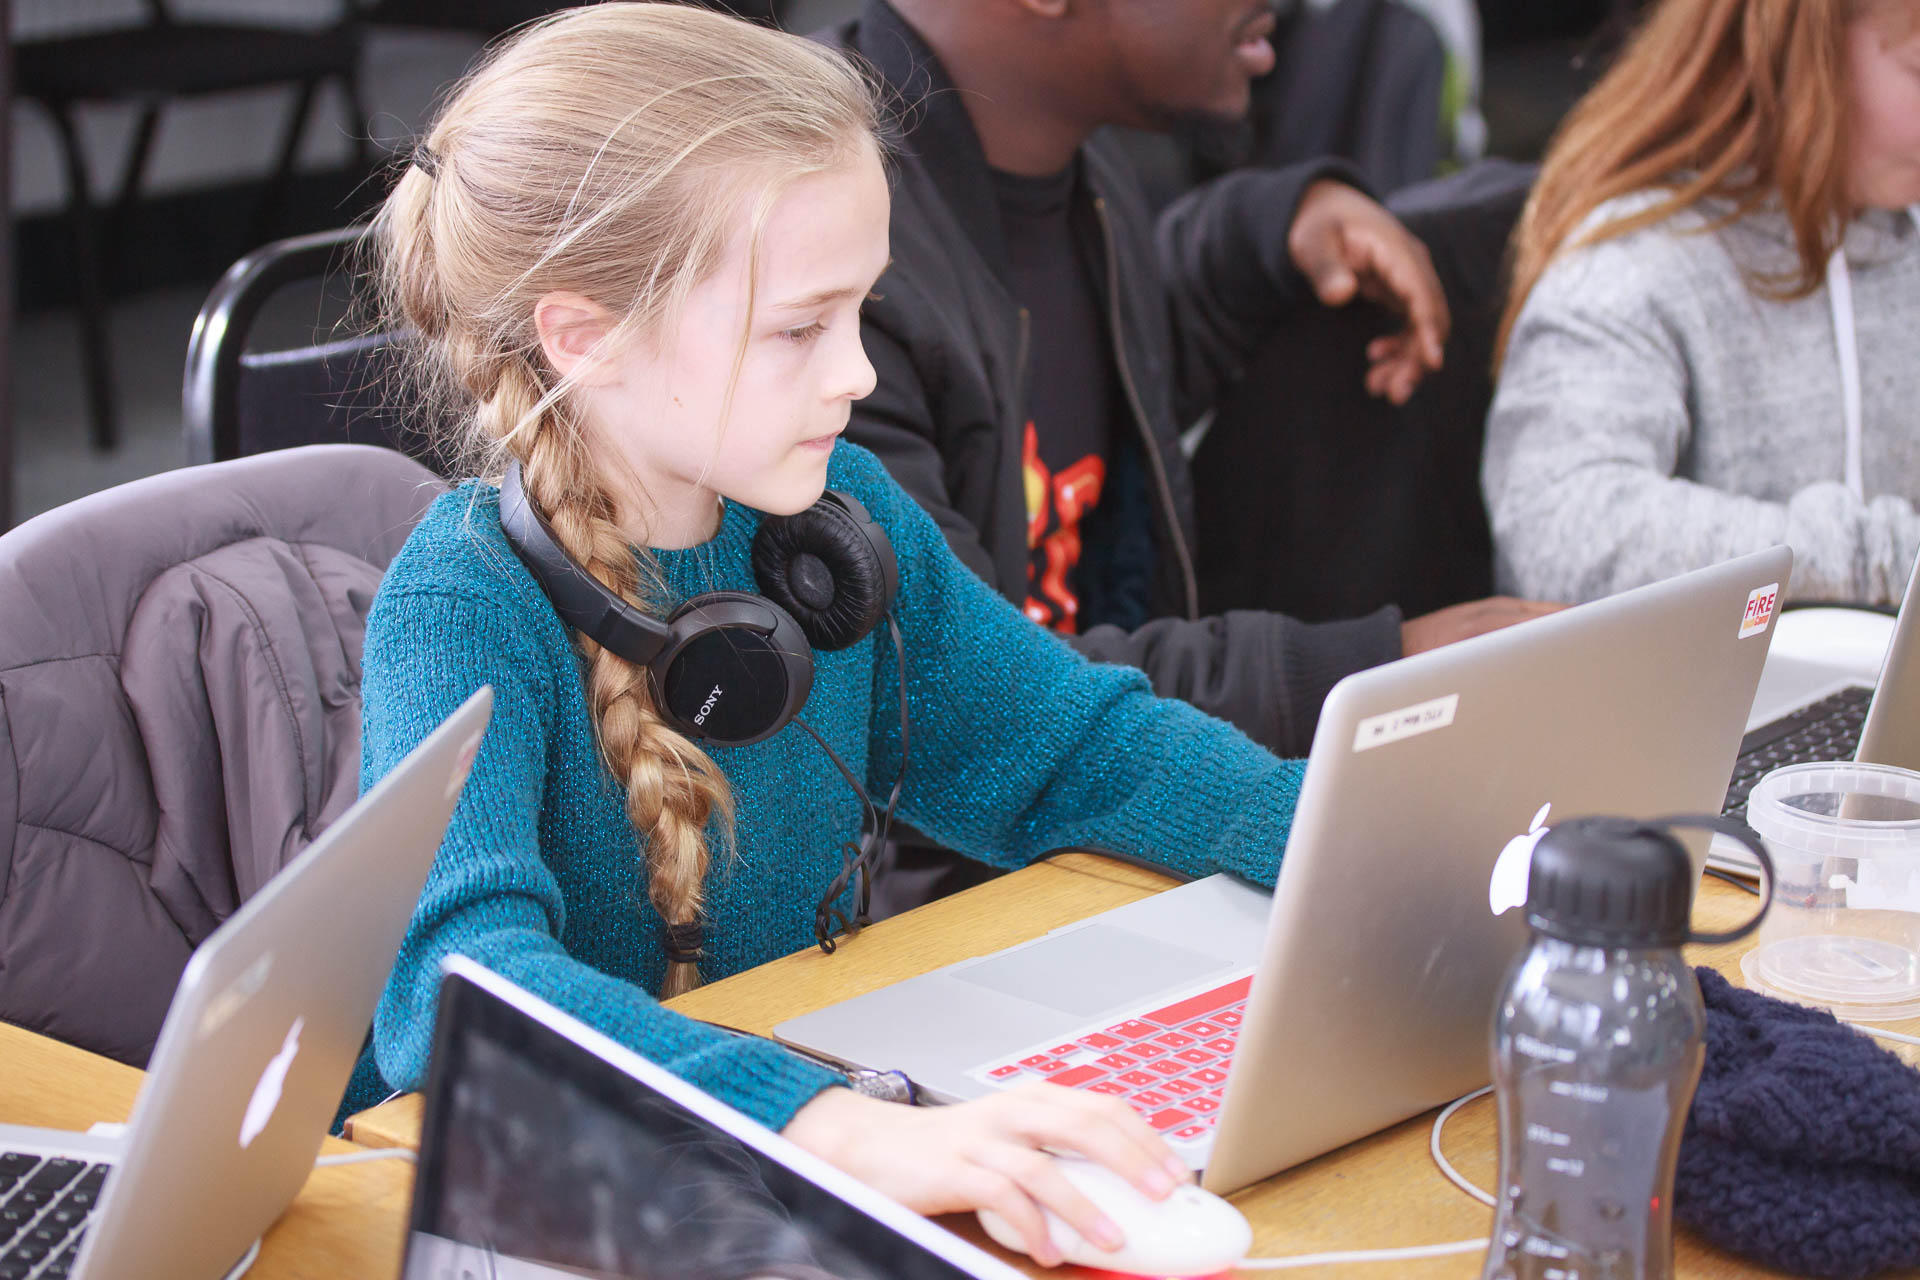 The Future is Bright: Getting More Girls into STEAM